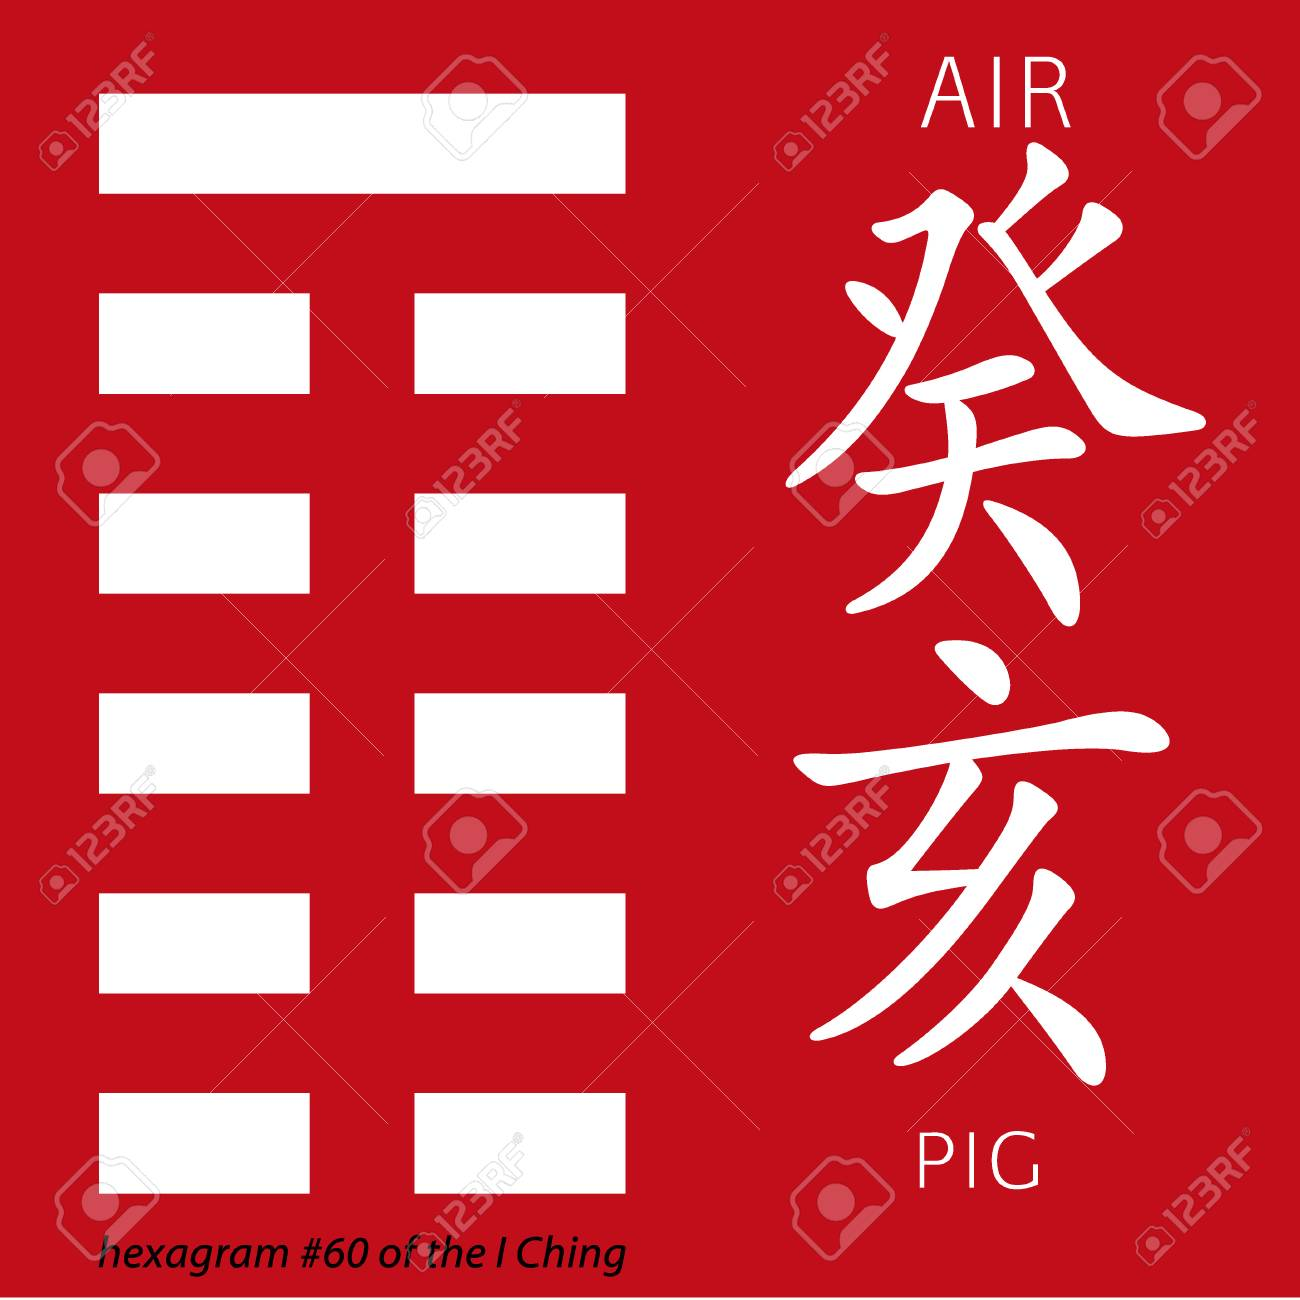 Symbol of i ching hexagram from chinese hieroglyphs translation symbol of i ching hexagram from chinese hieroglyphs translation of 12 zodiac feng shui signs biocorpaavc Gallery